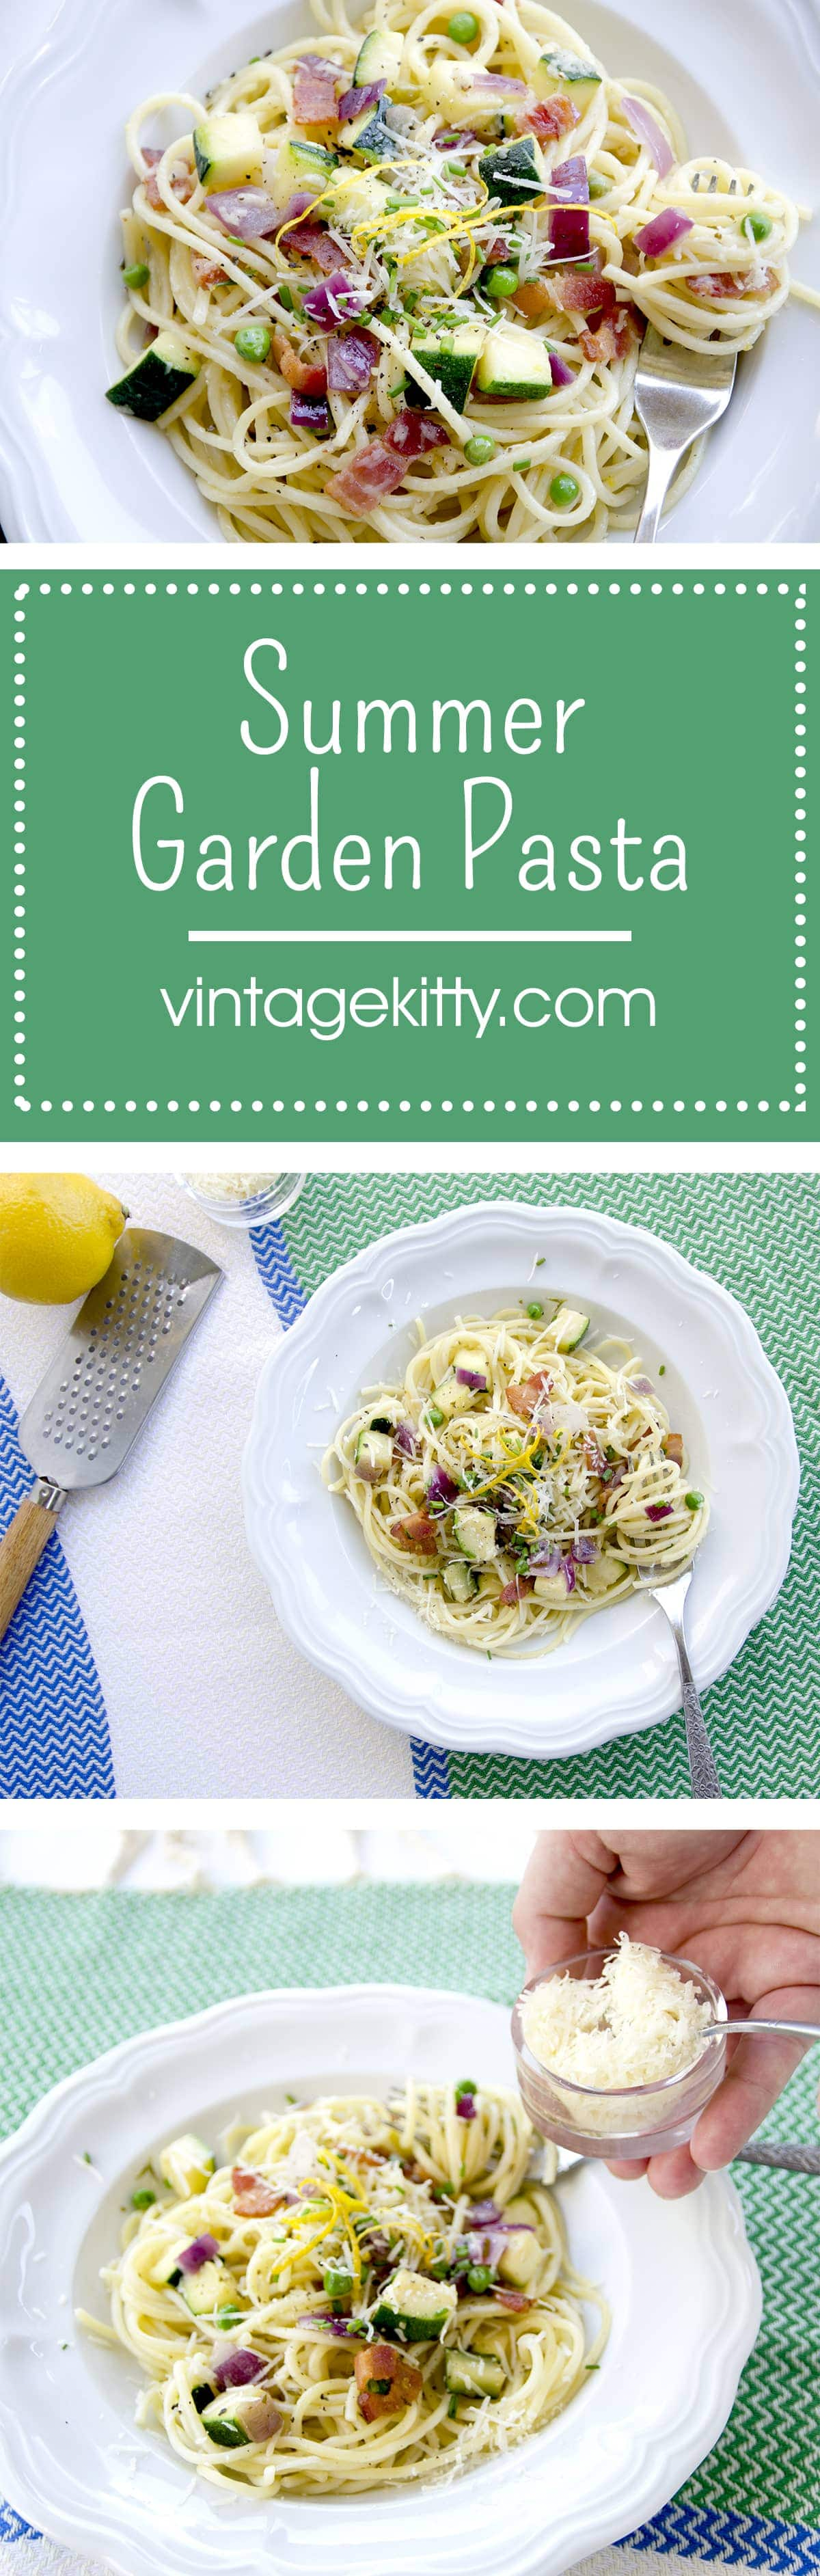 Summer Garden Pasta Long Pin - Easy Summer Garden Pasta